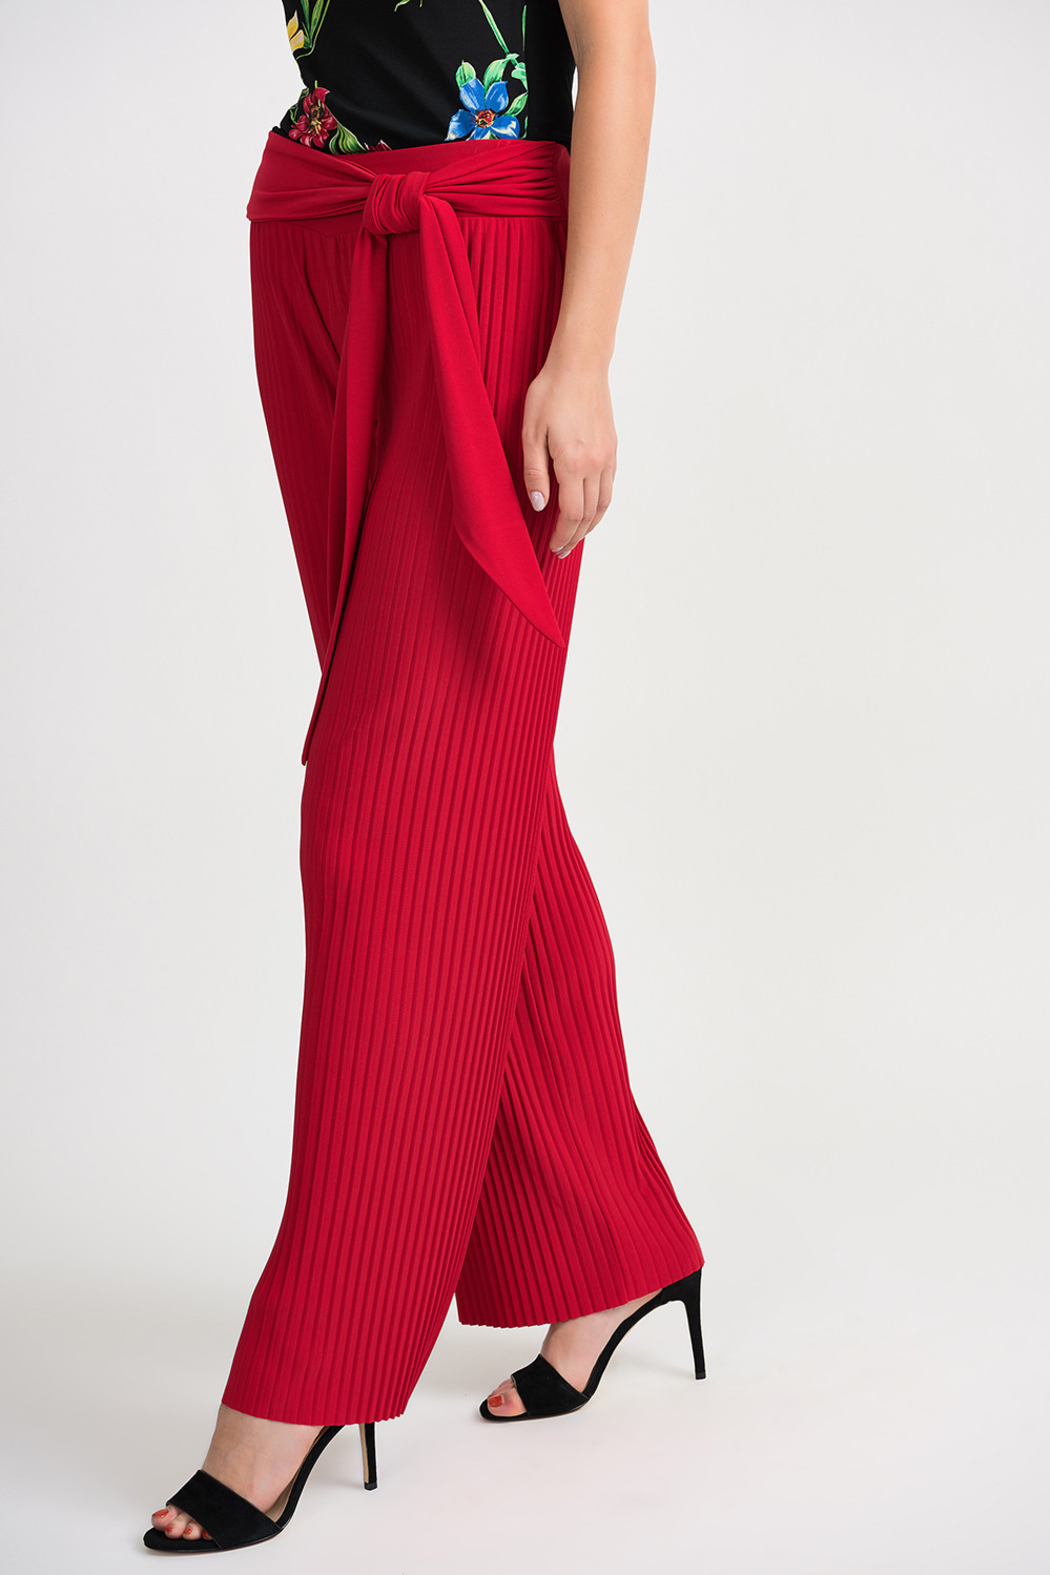 Joseph Ribkoff Pleated Palazzo Pant, Lipstick Red - Main Image